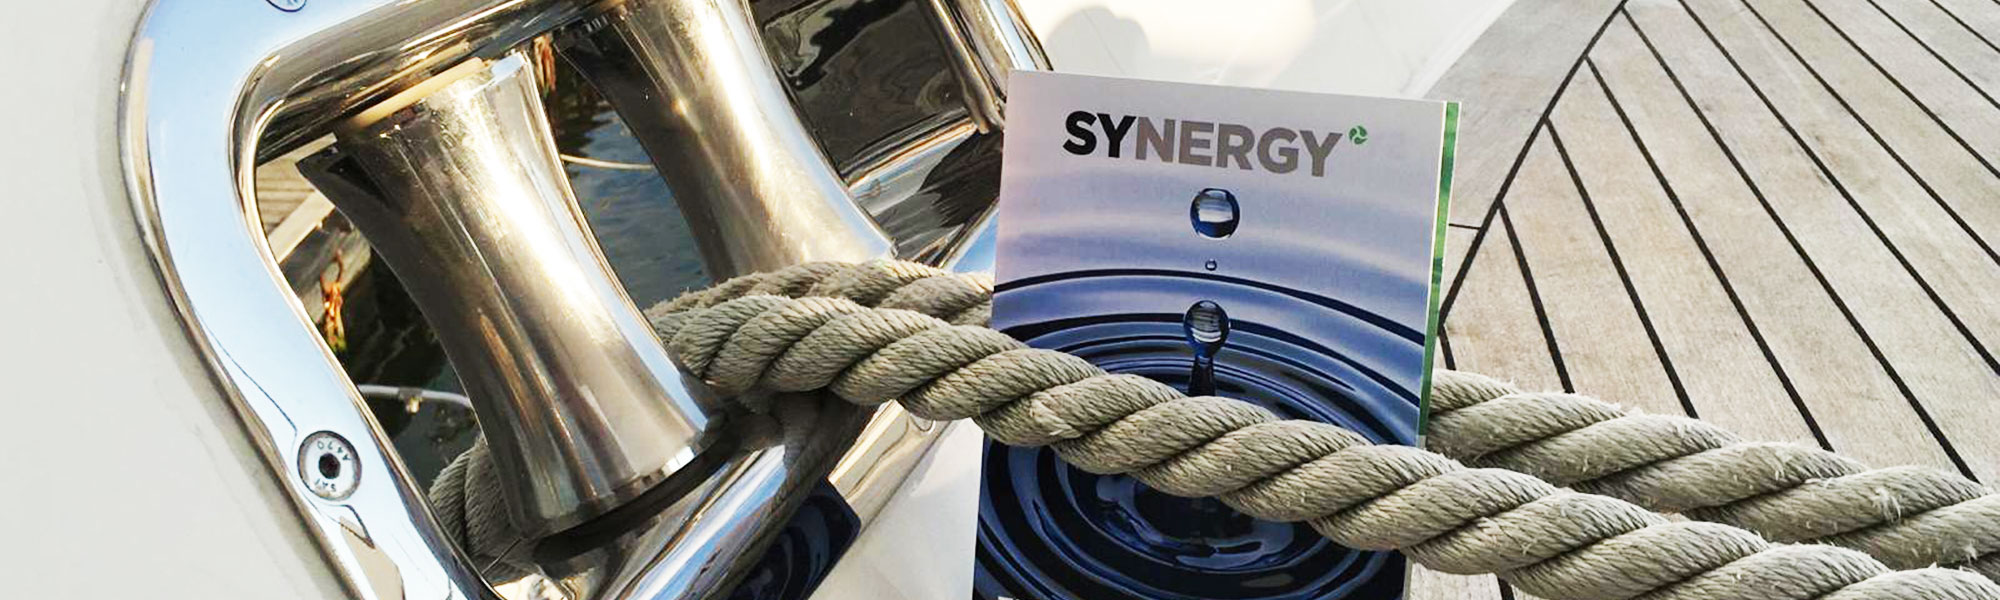 about synergy